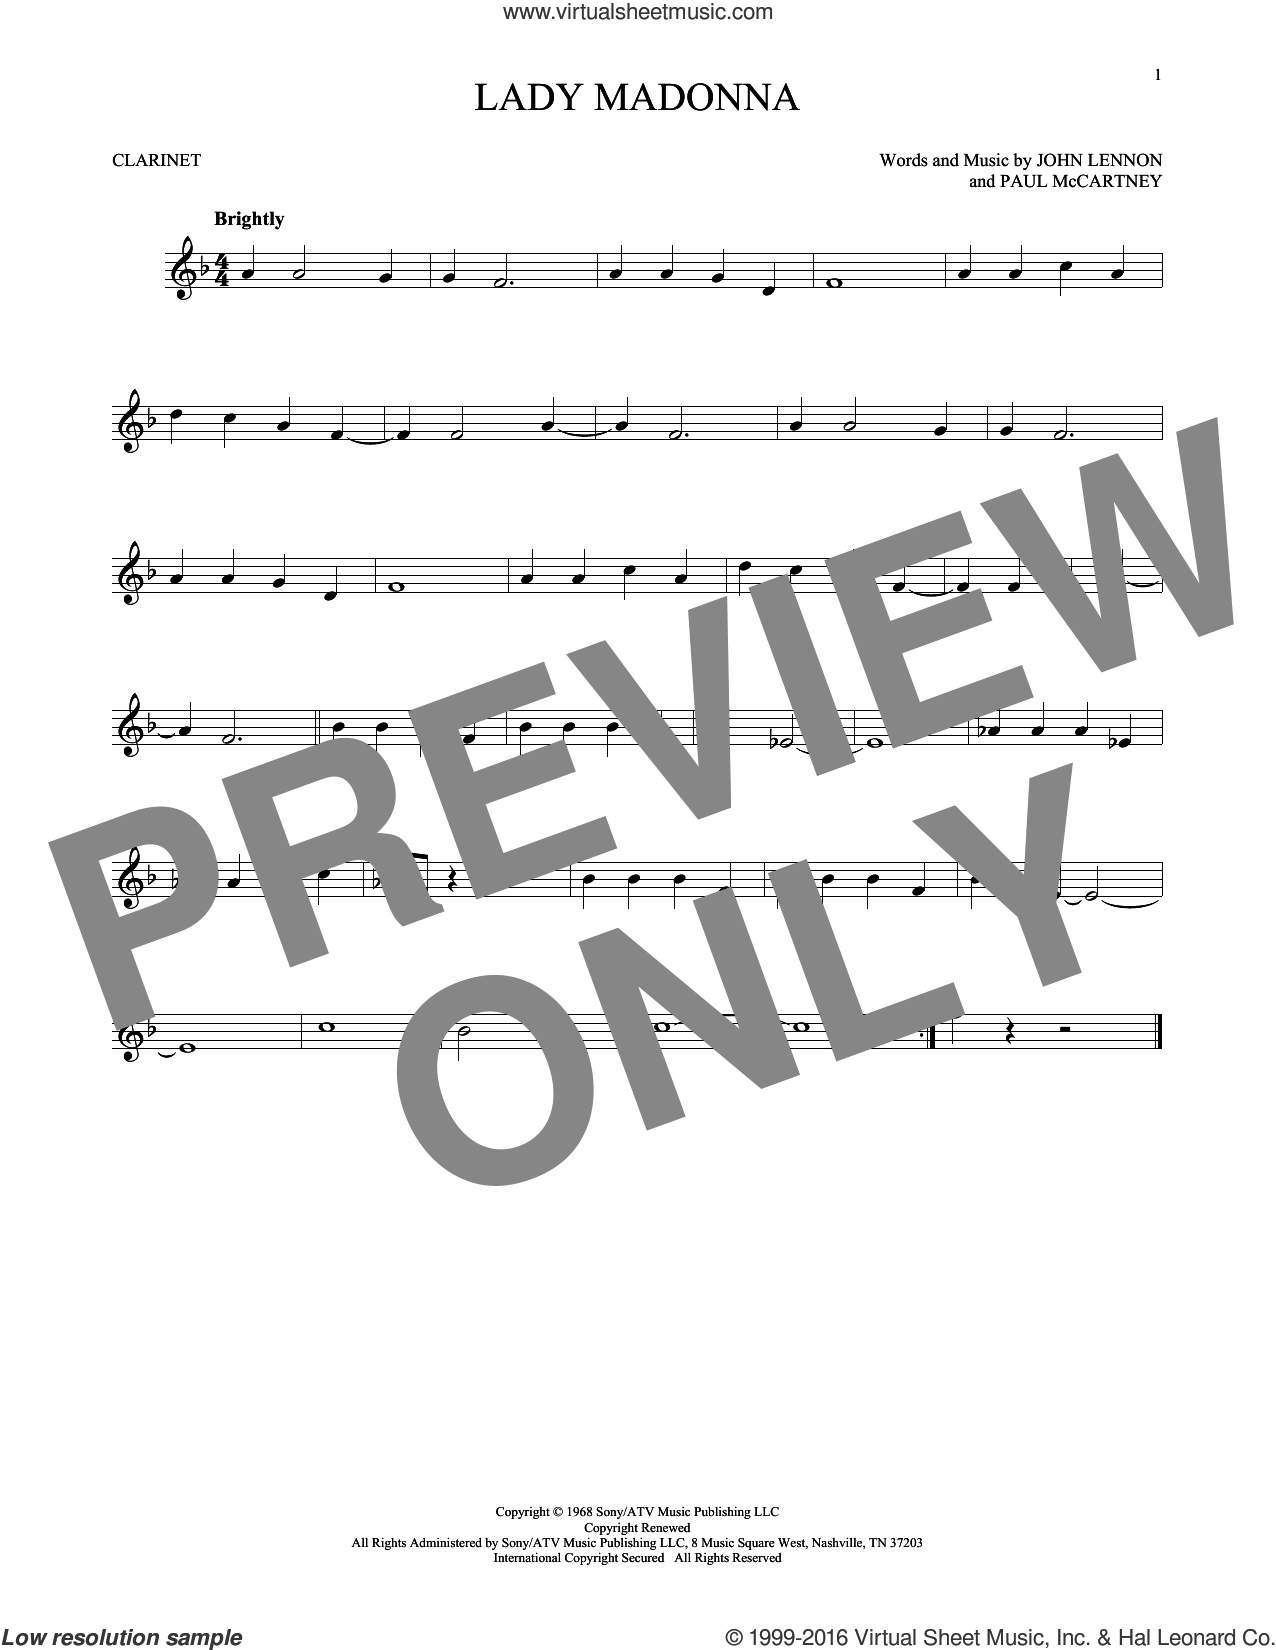 Lady Madonna sheet music for clarinet solo by The Beatles, John Lennon and Paul McCartney, intermediate skill level